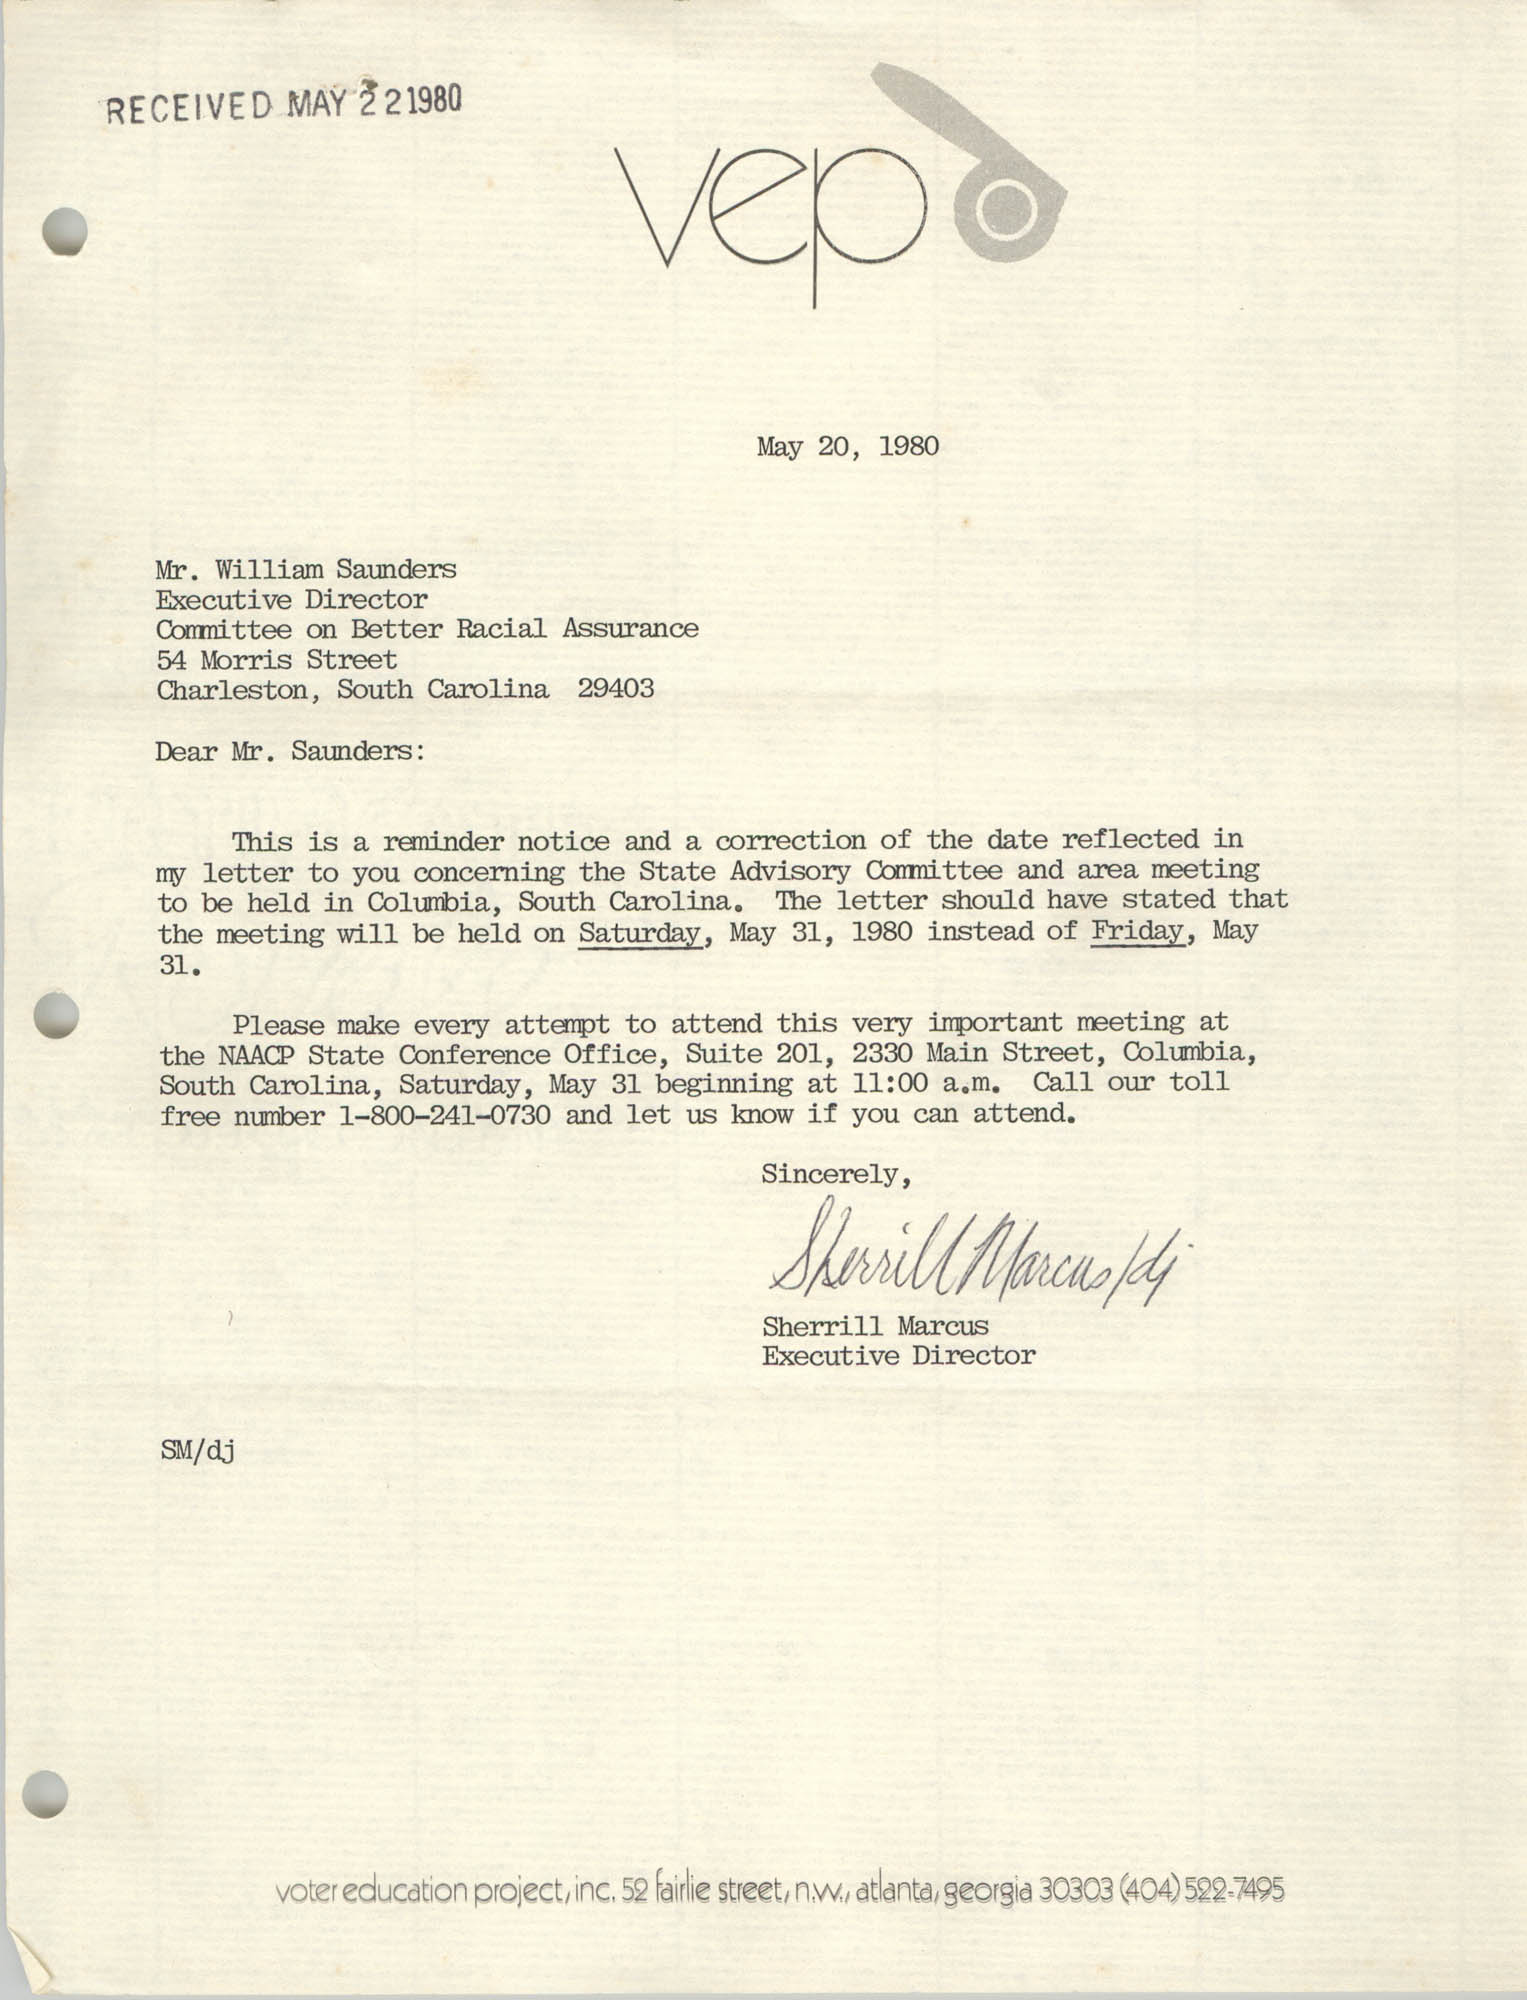 Letter from Sherrill Marcus to William Saunders, May 20, 1980